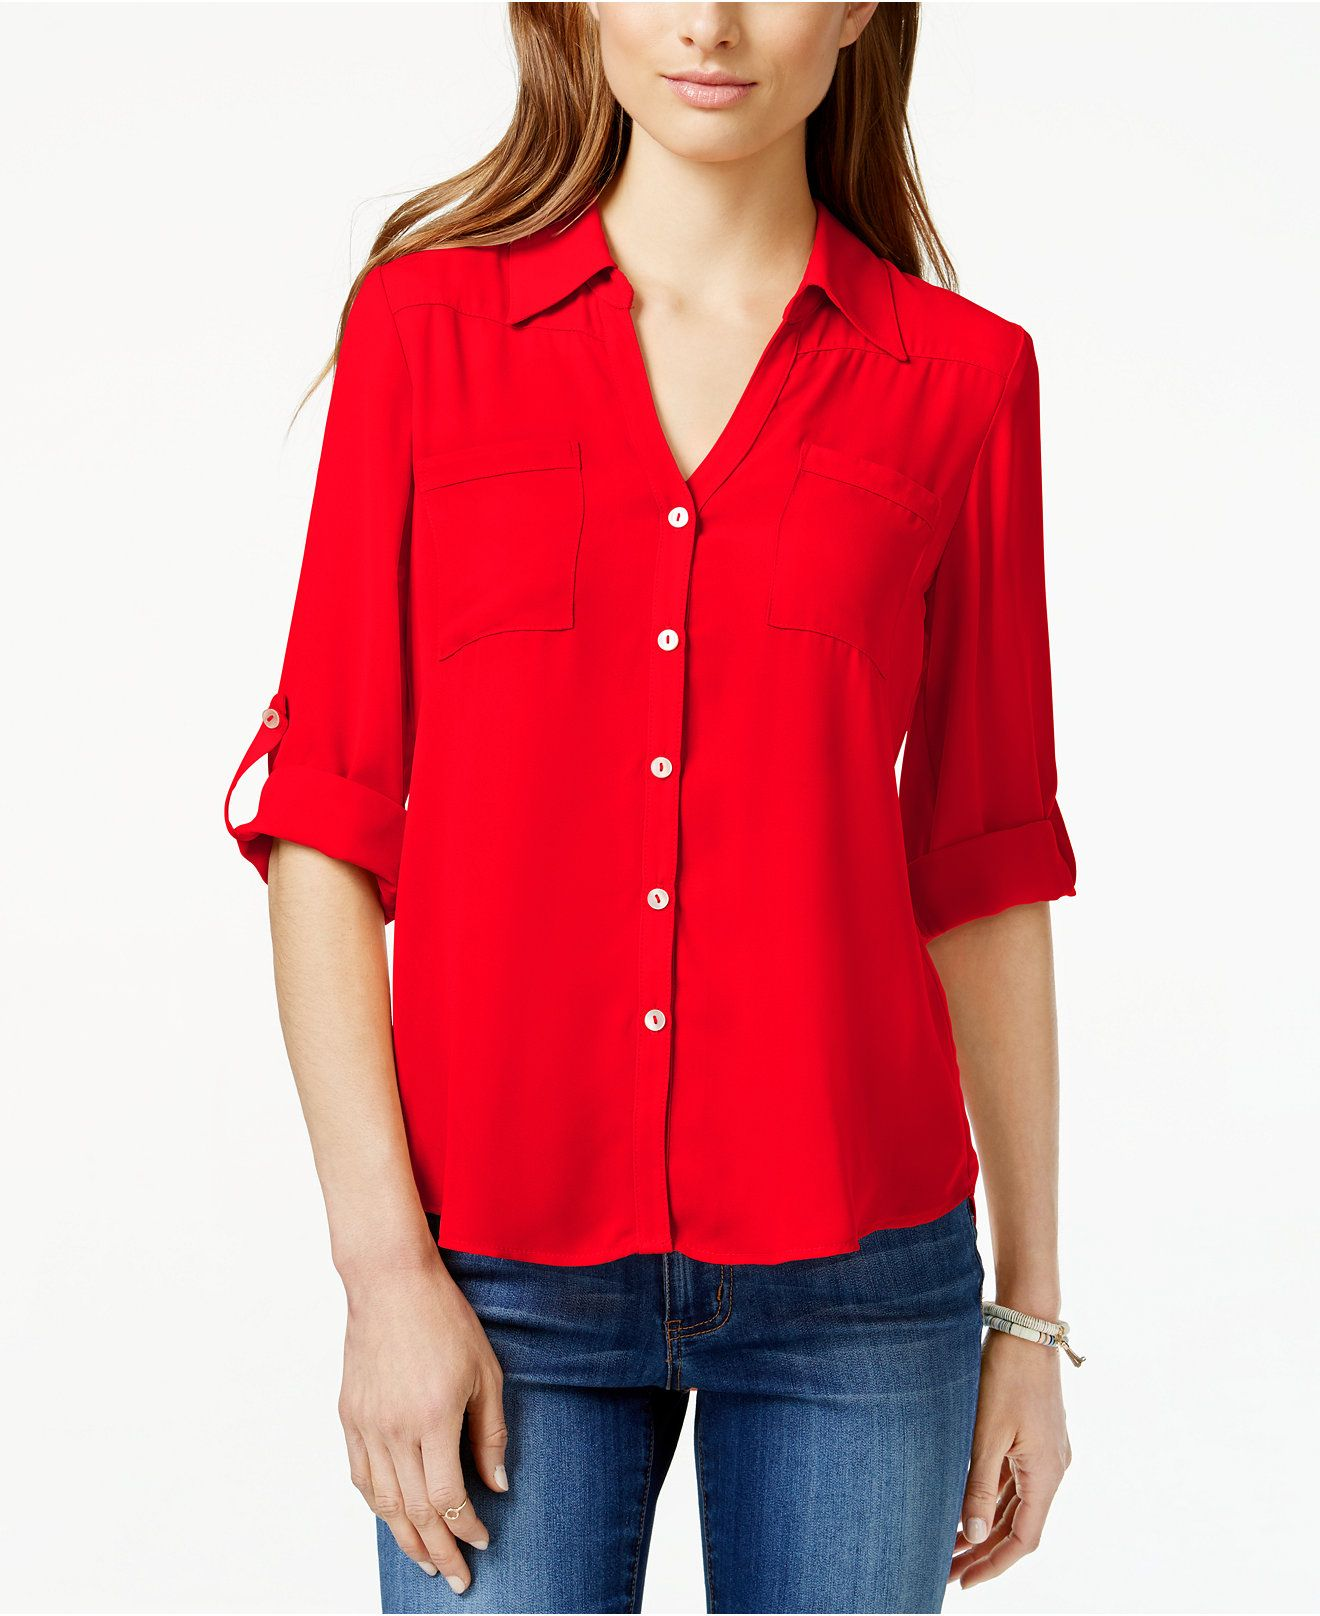 e994f11e93ce95 BCX Juniors  Roll-Tab Button-Front High-Low Blouse - Juniors Tops - Macy s